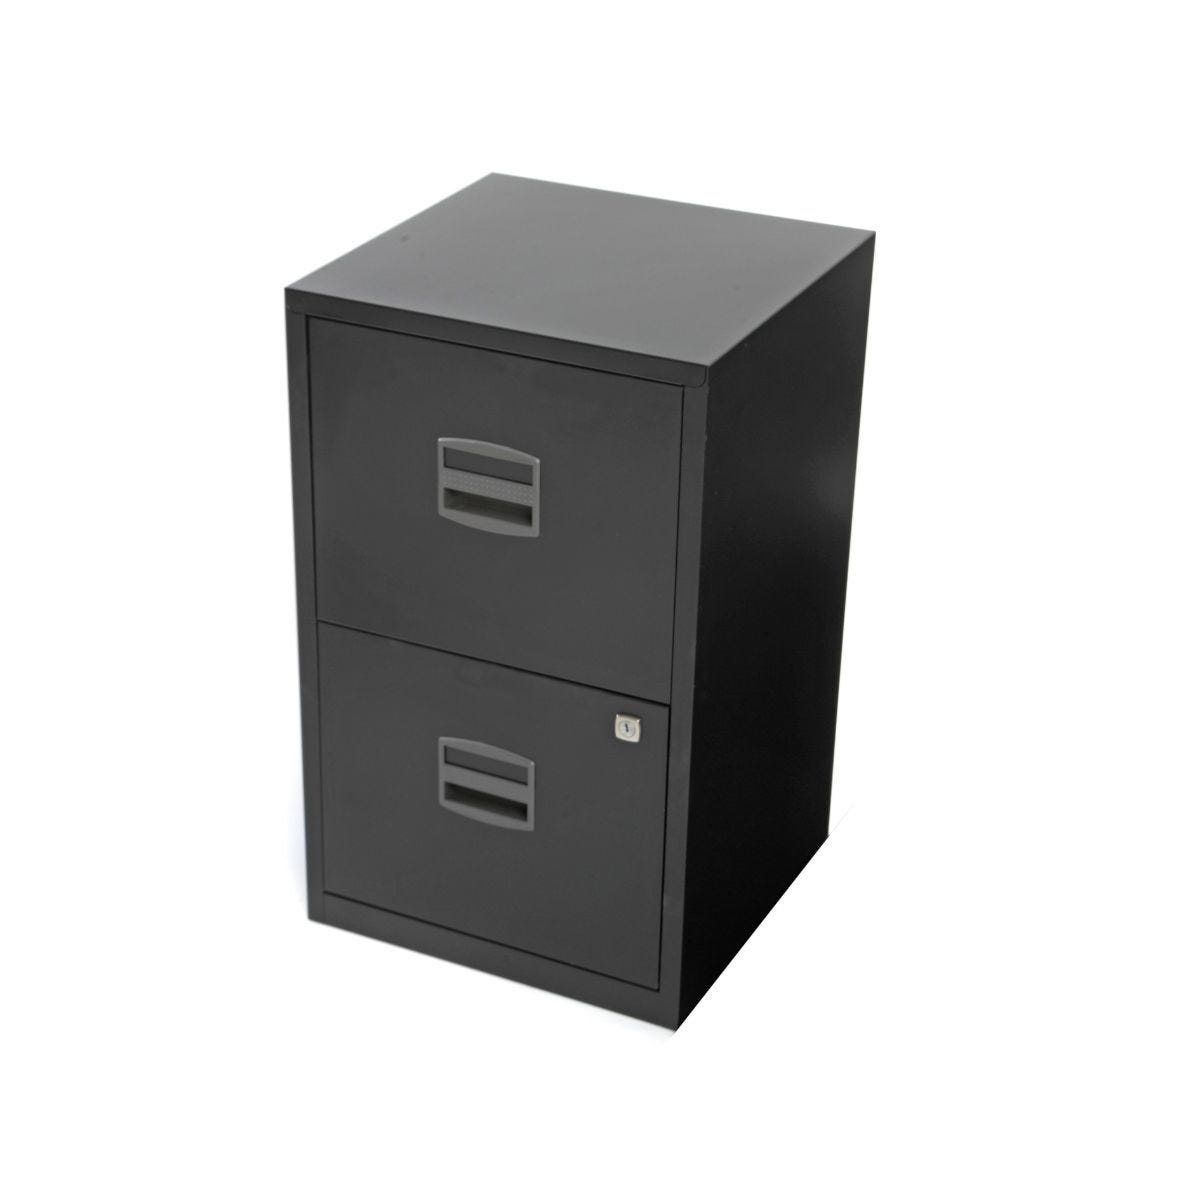 Bisley Metal Filing Cabinet 2 Drawer A4 H670xW410xD400mm